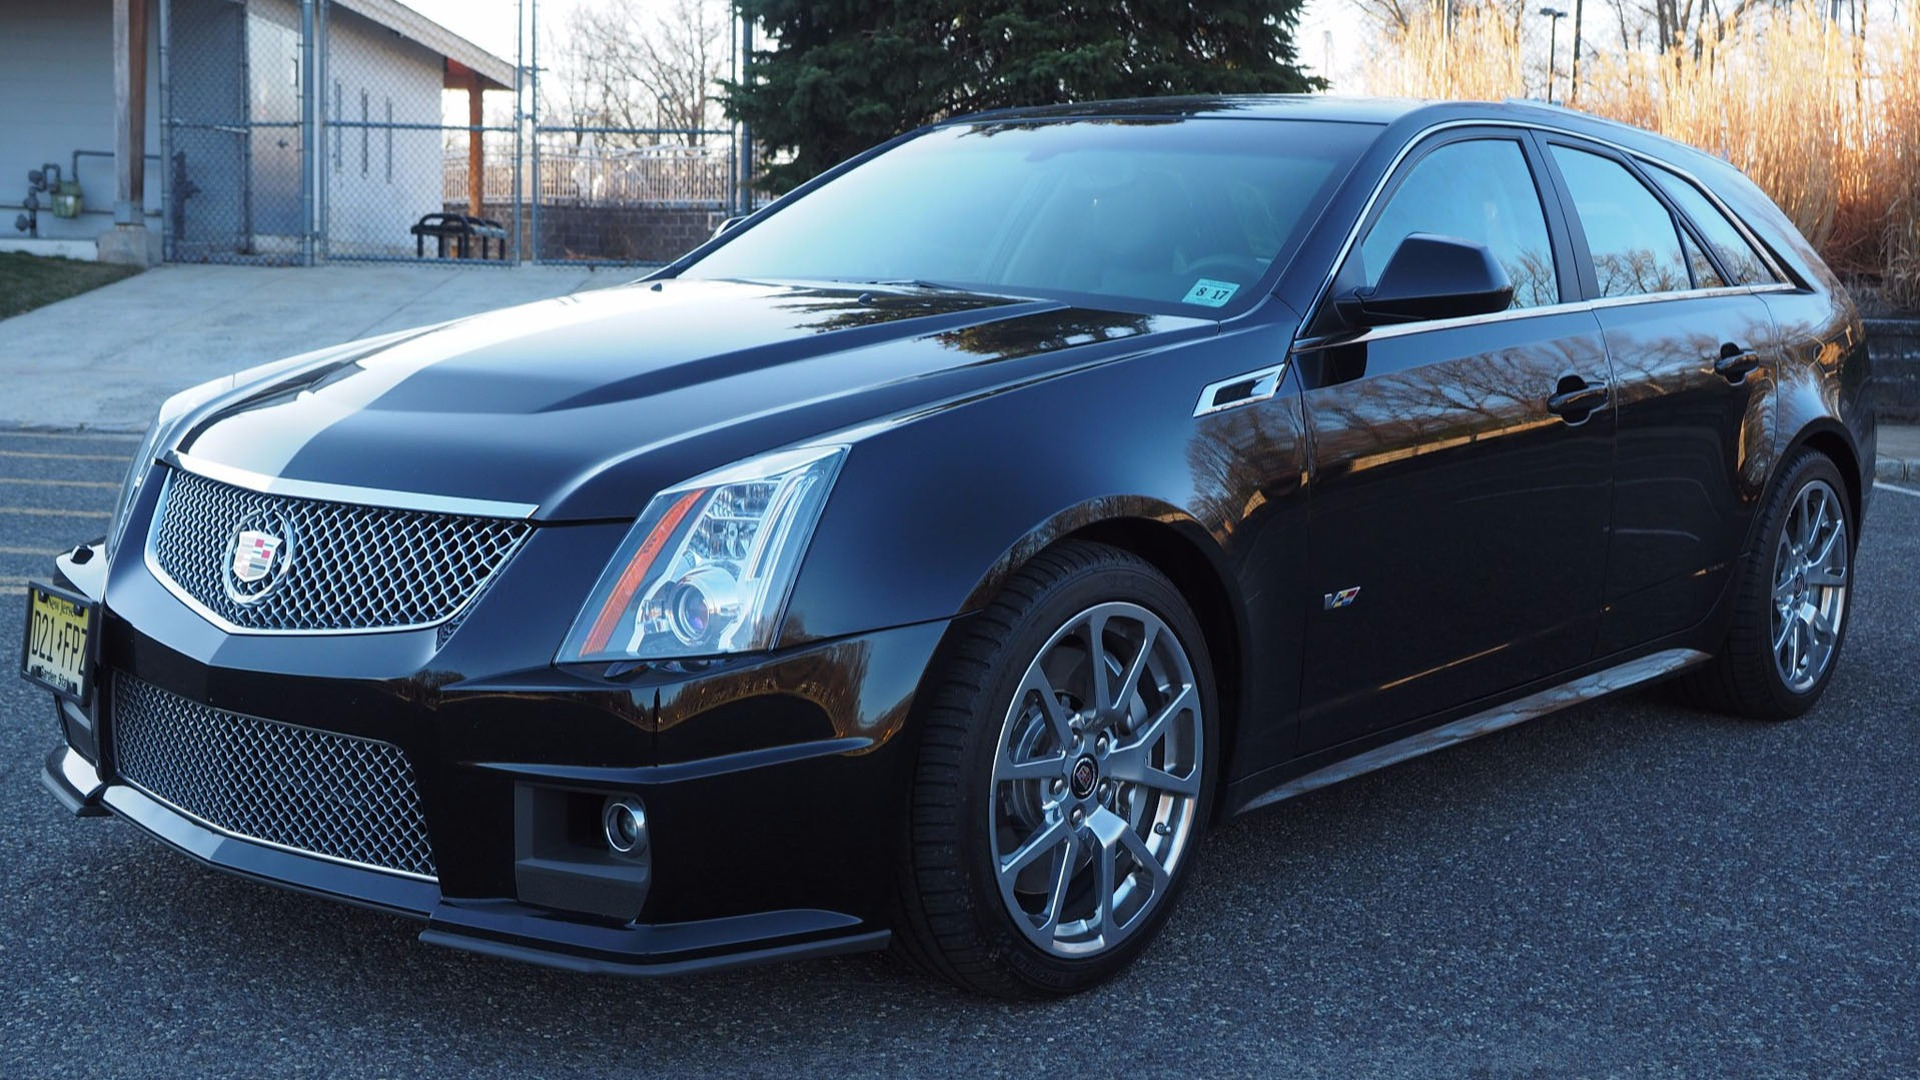 Cadillac Cts V Wagon For Sale >> Score This Rare 2012 Cadillac CTS-V Manual Wagon While Its Affordable